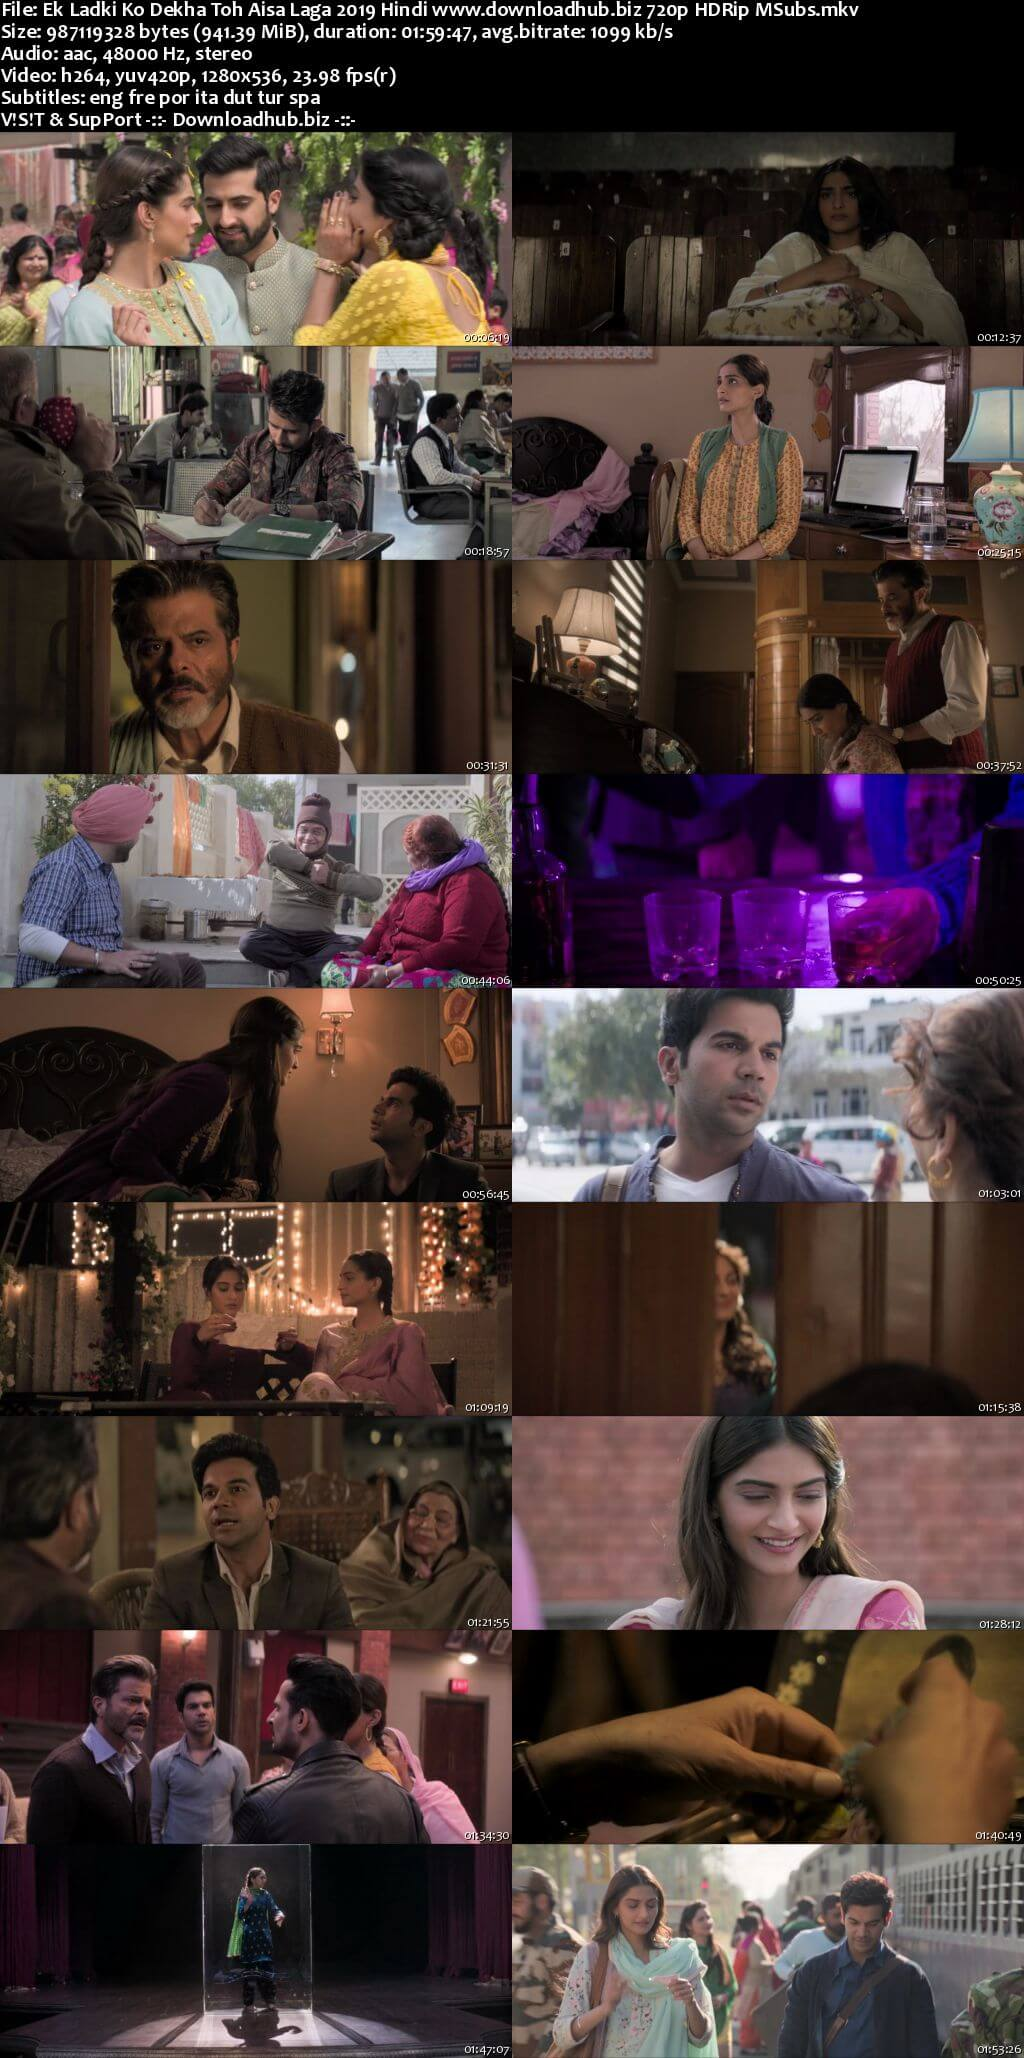 Ek Ladki Ko Dekha Toh Aisa Laga 2019 Hindi 720p HDRip MSubs